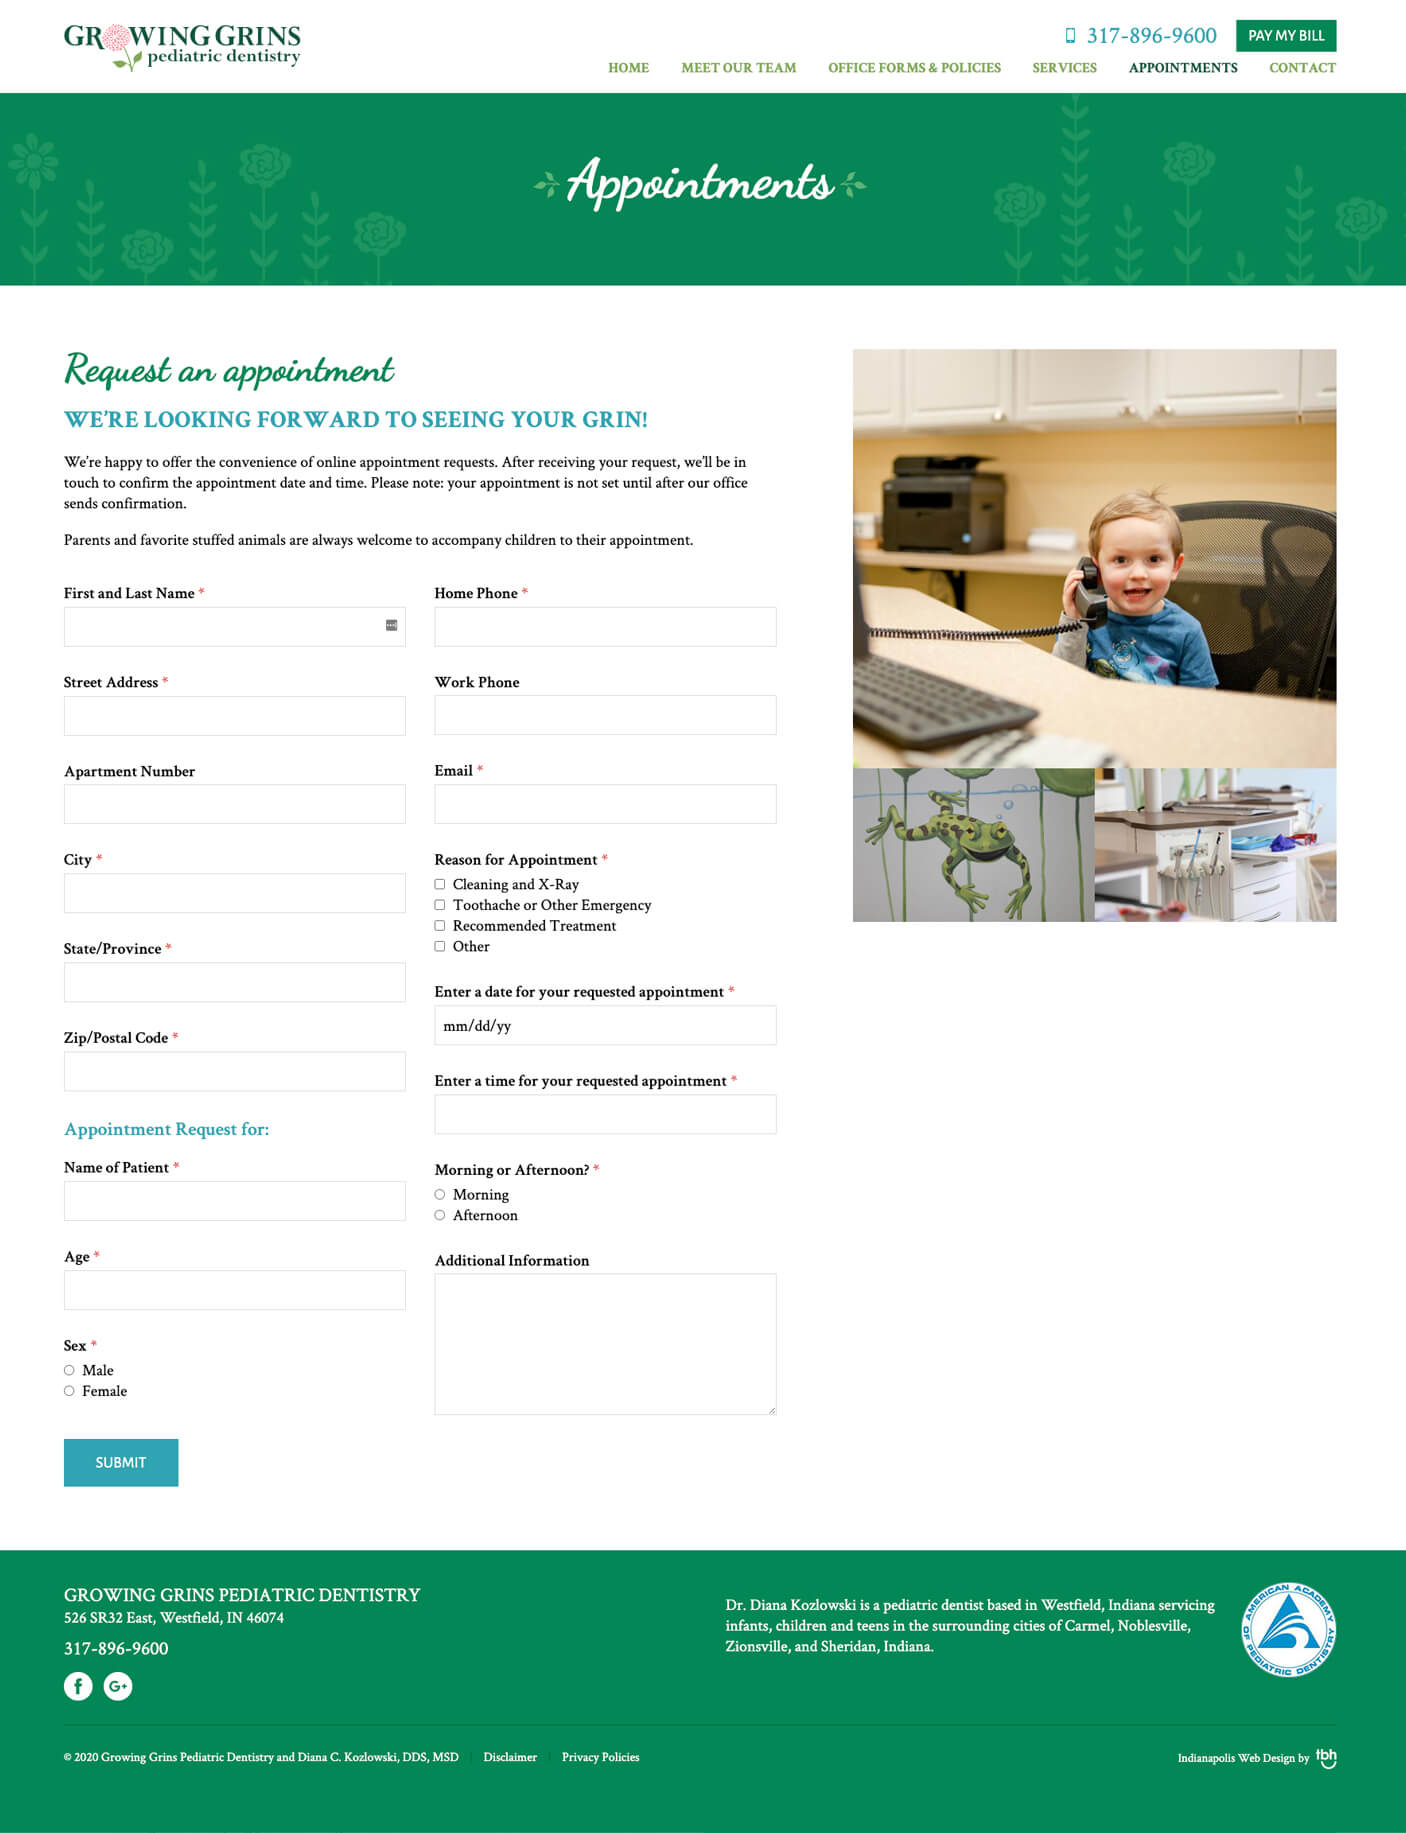 Pediatric Dentistry online appointment form web page